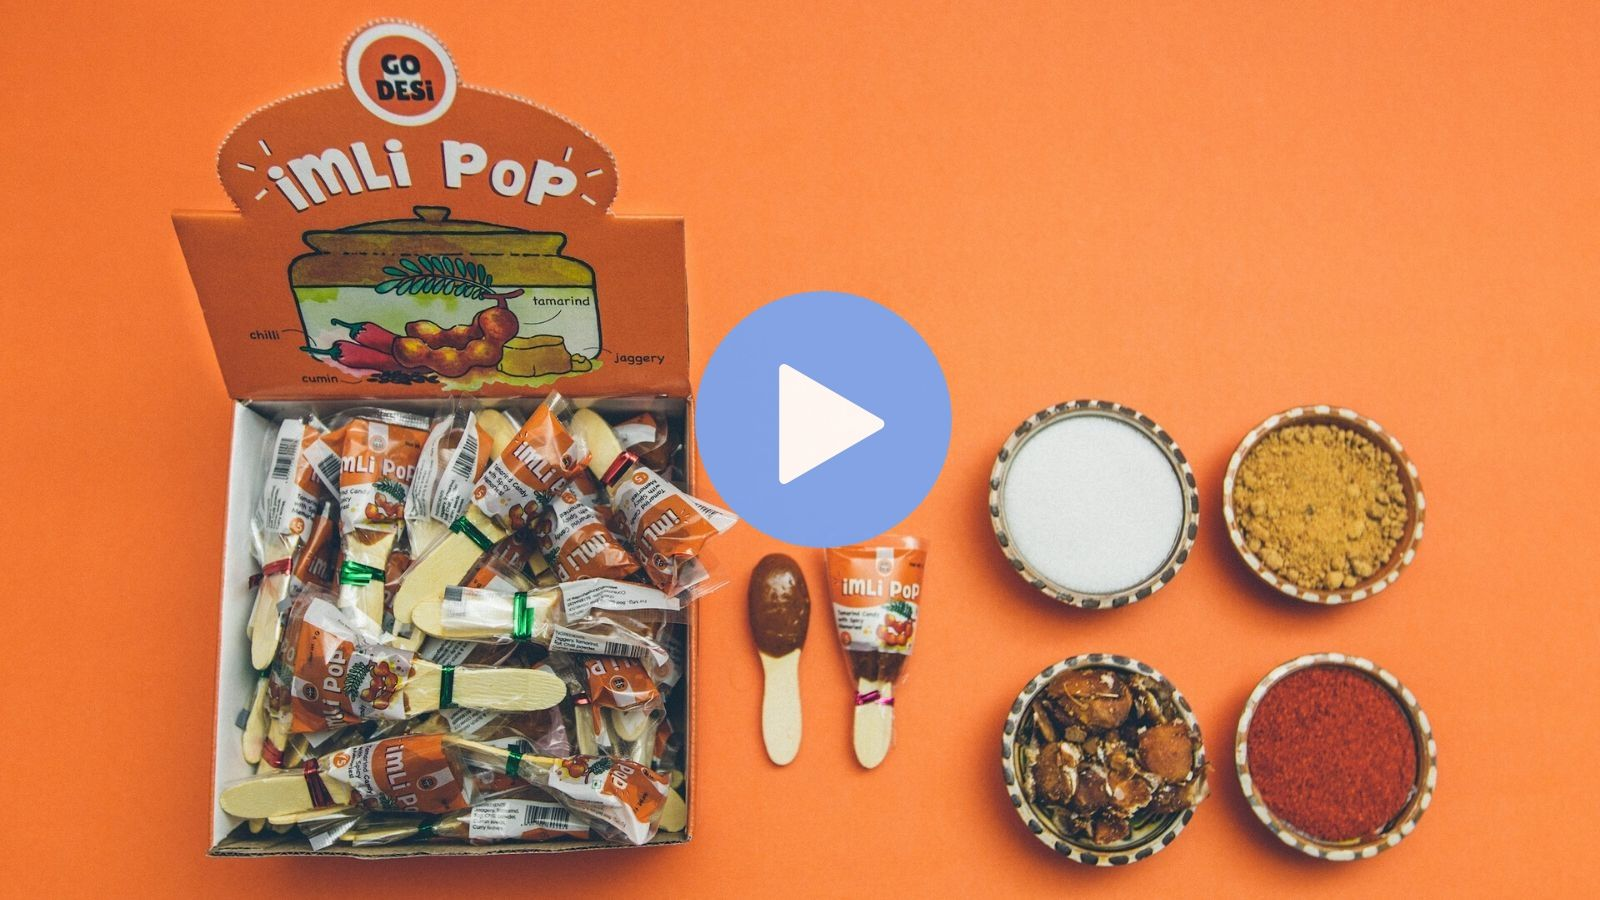 GO DESi - Imli pop Handmade with love